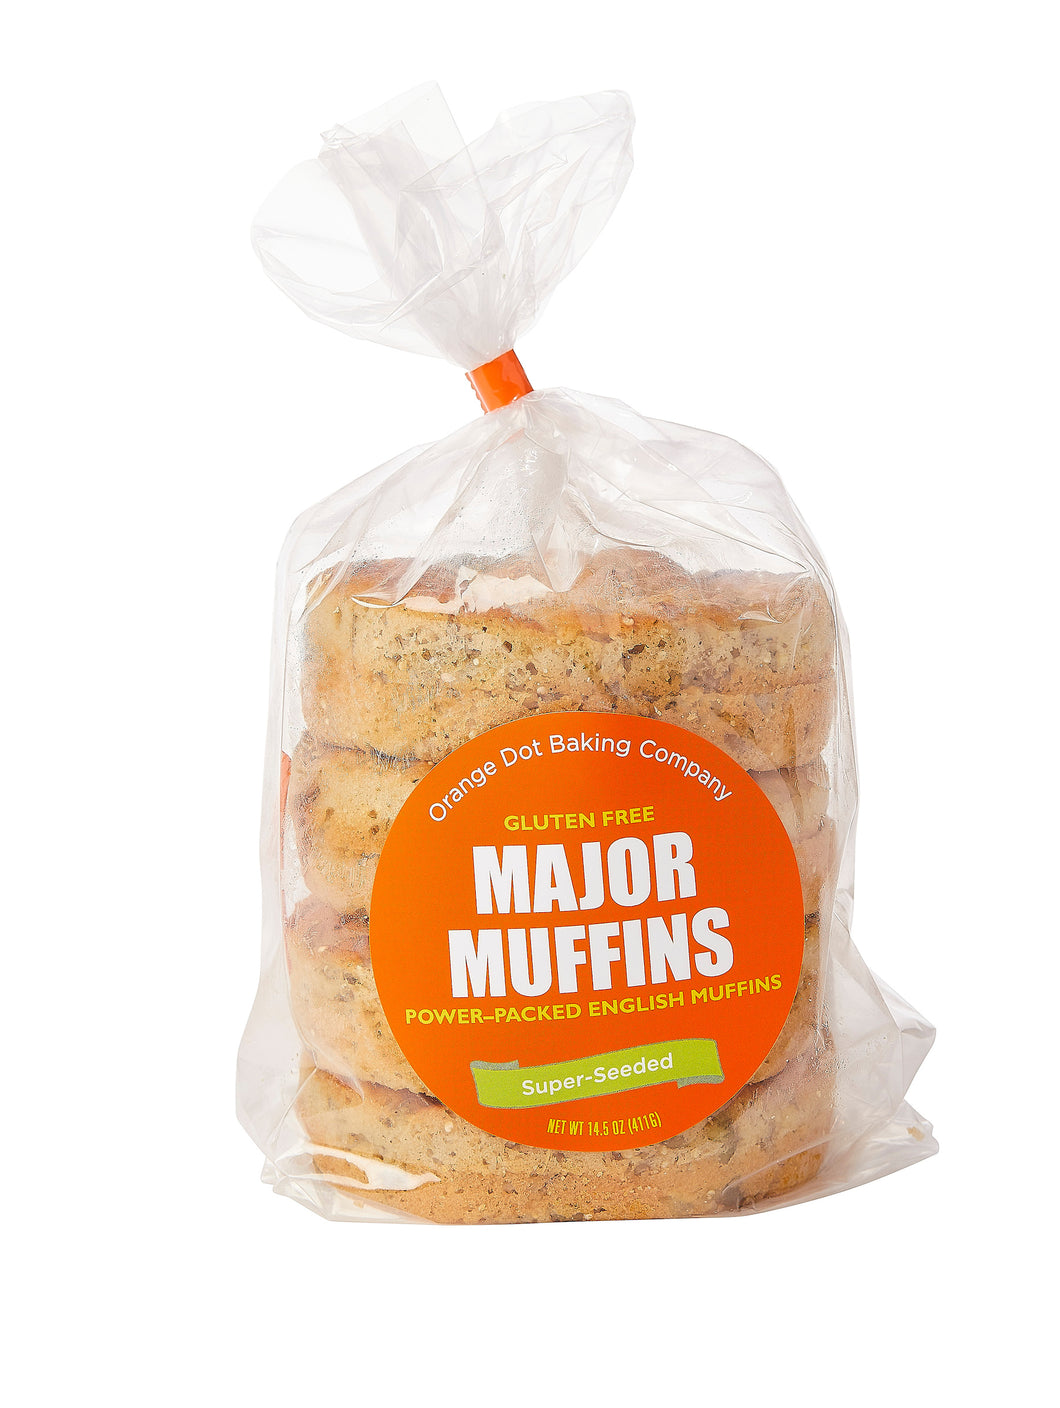 Super-Seeded English Muffins